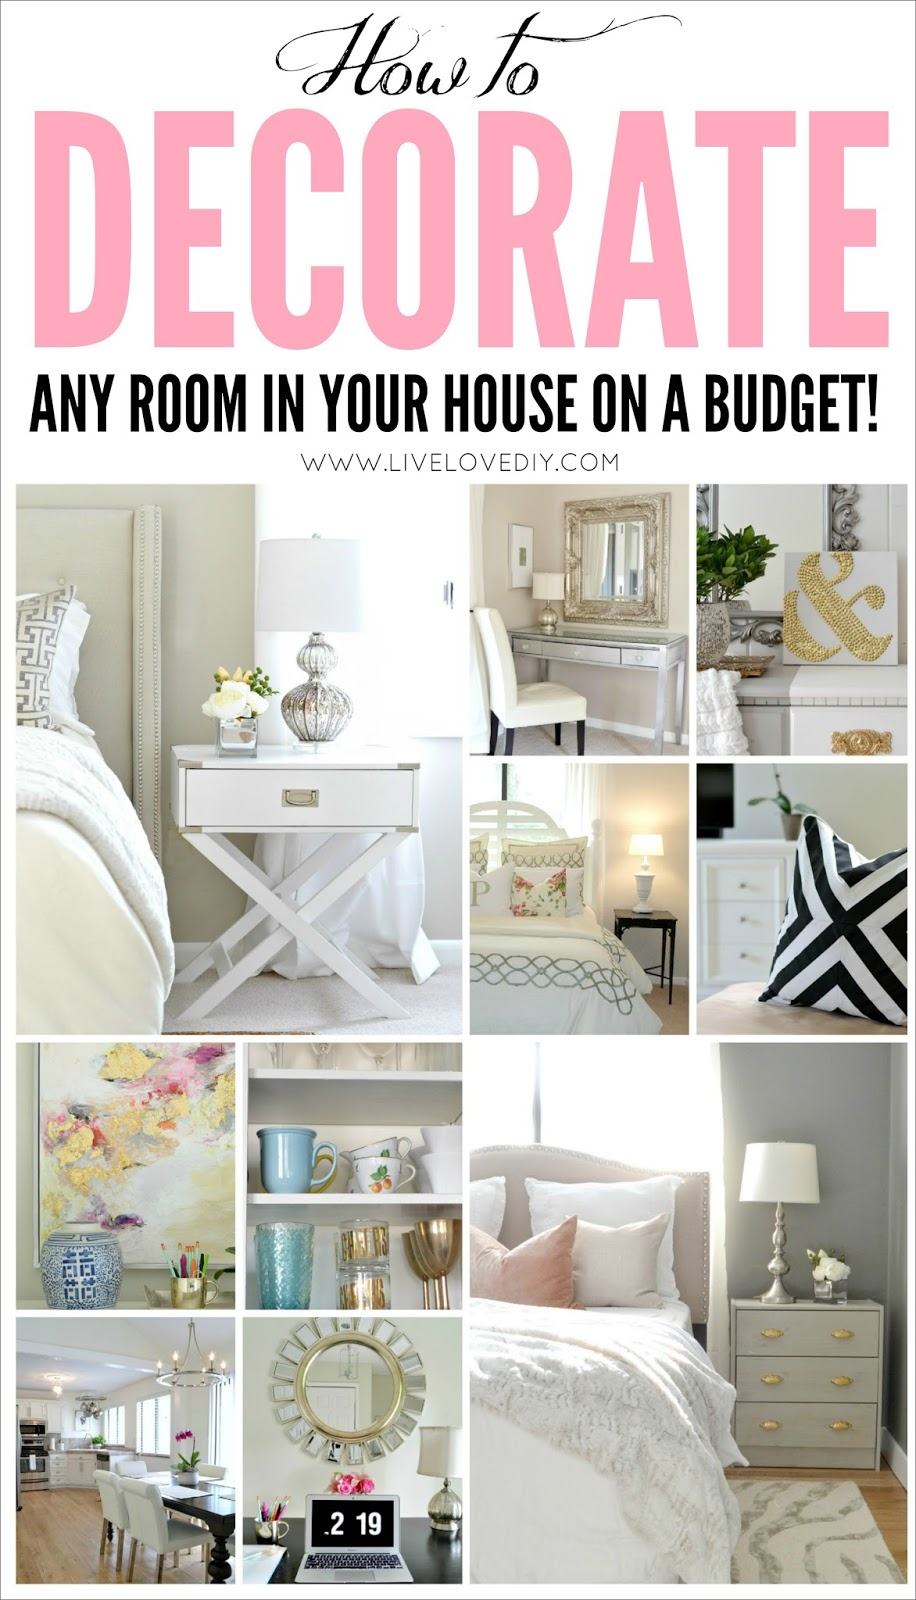 Home decorating blogs on a budget for Home decor on a budget